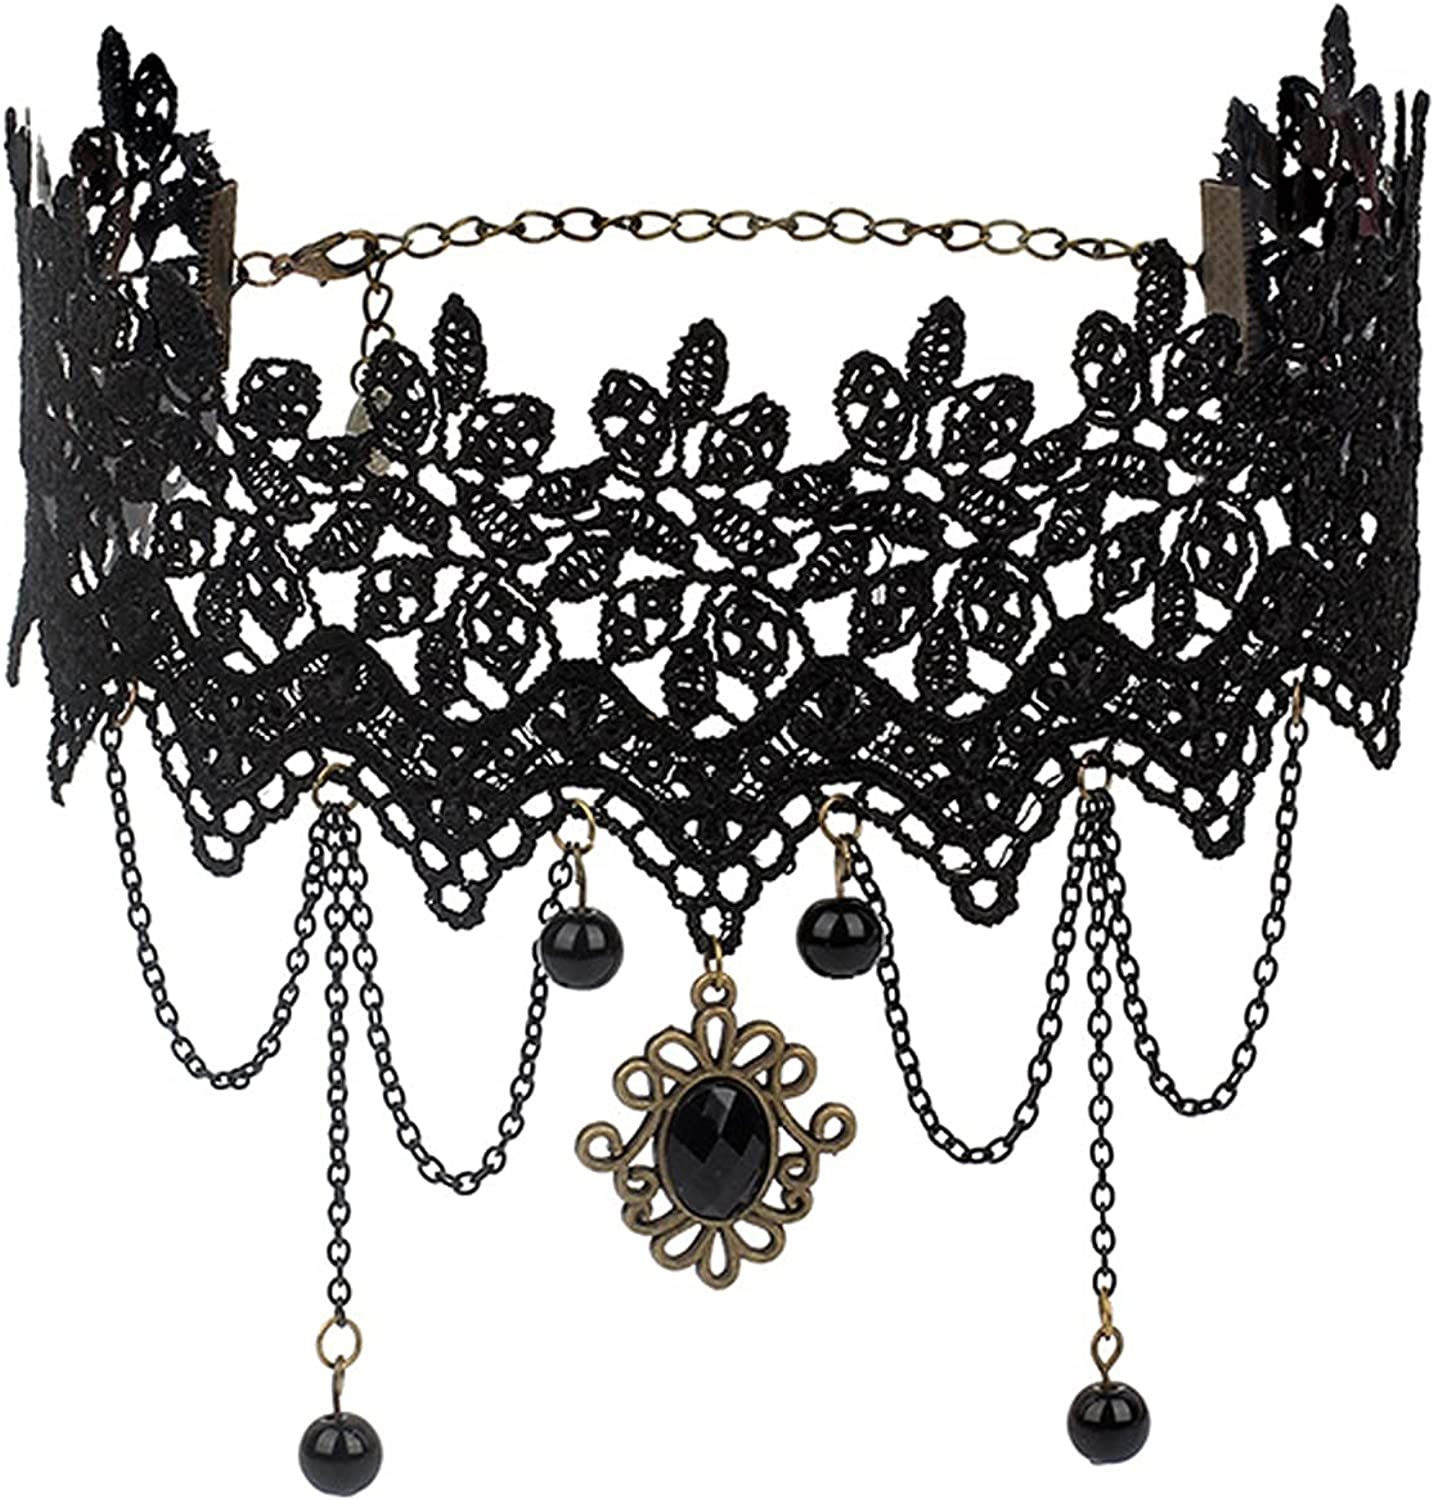 Gothic Lolita Lace Choker Necklace, Vintage Rose Black Lace Link Tassel Collar Necklace for Women Girls Halloween Cosplay Lolita Costume Jewelry